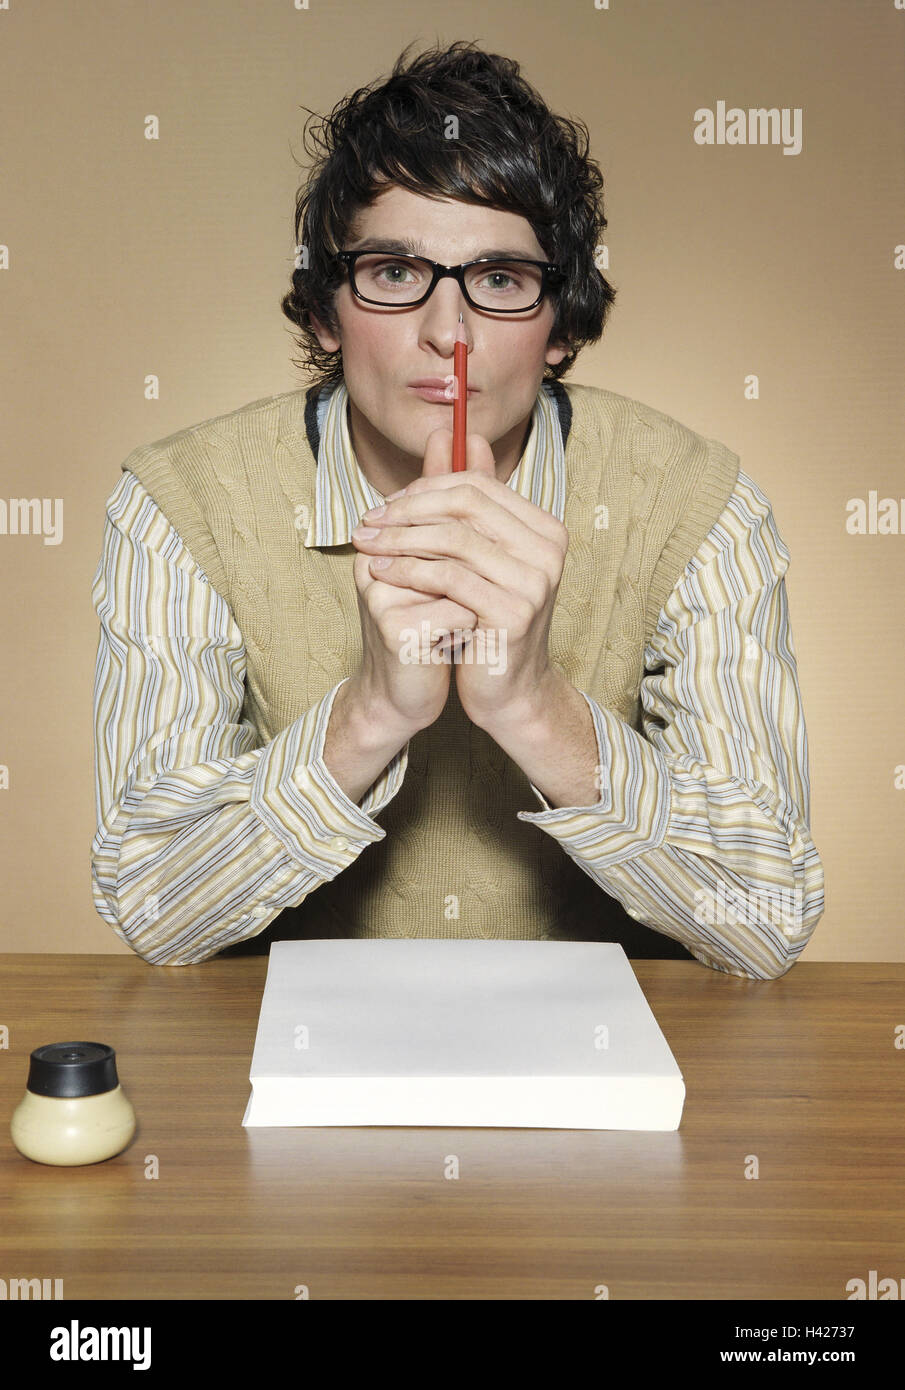 Desk, man, young, glasses,  Paper, pencil, gaze camera, portrait,,   Series, 20-30 years, dark-haired, shirt, Pullunder, Stock Photo